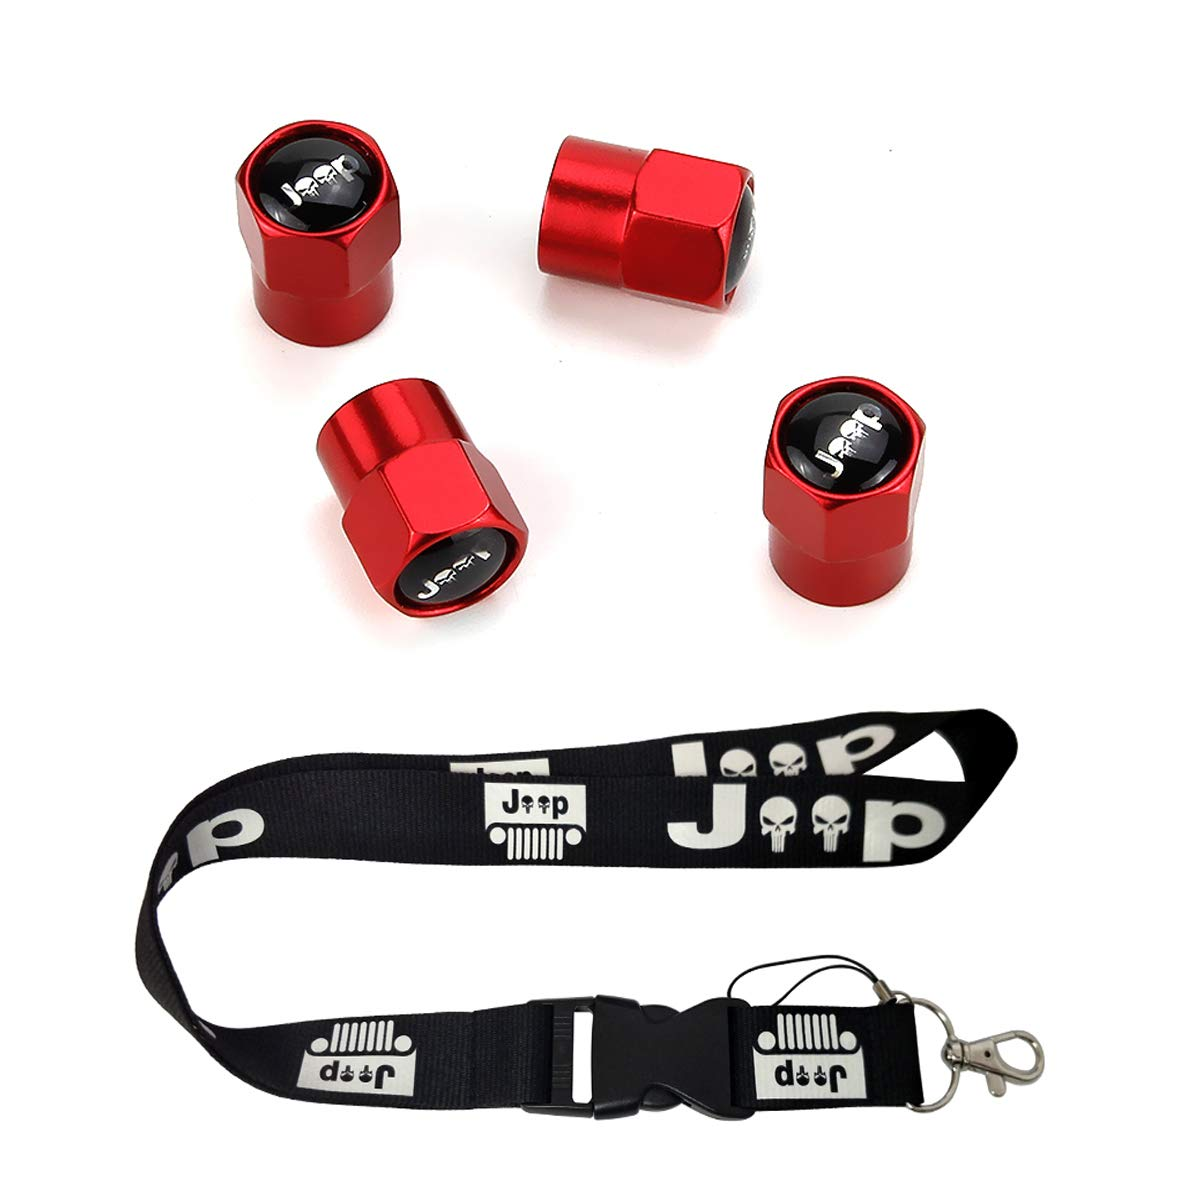 Vemblemm Design for Jeep Skull Punisher Skeleton Combo 1pc Lanyard Keychain /& 4pcs Wheel Tires Valve Stem Red Caps for Car Accessories Jeep Truck SUV RV Motorbike Bike Bicycle Badges Office ID